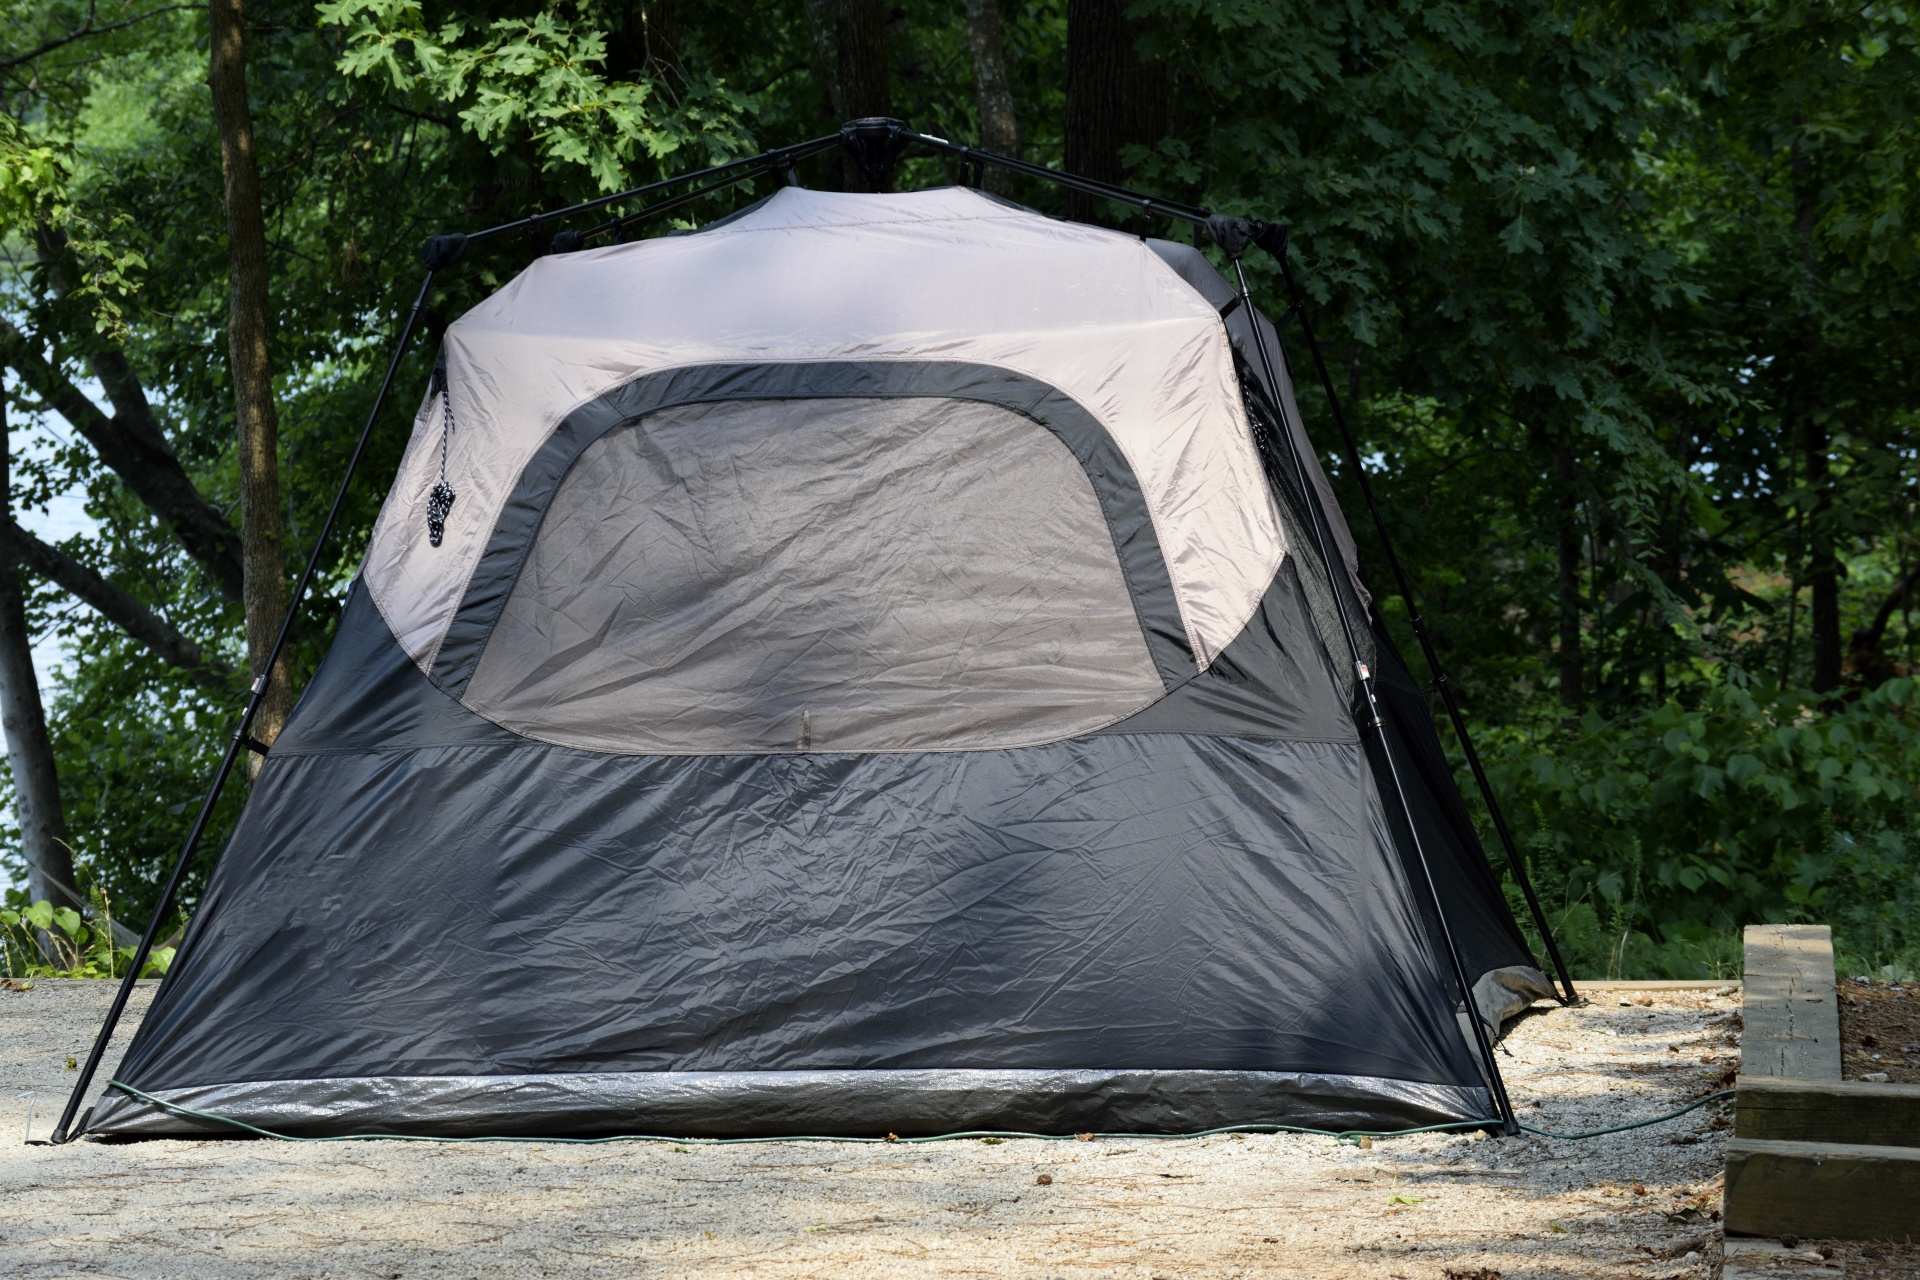 Camp sites going fast for May long weekend